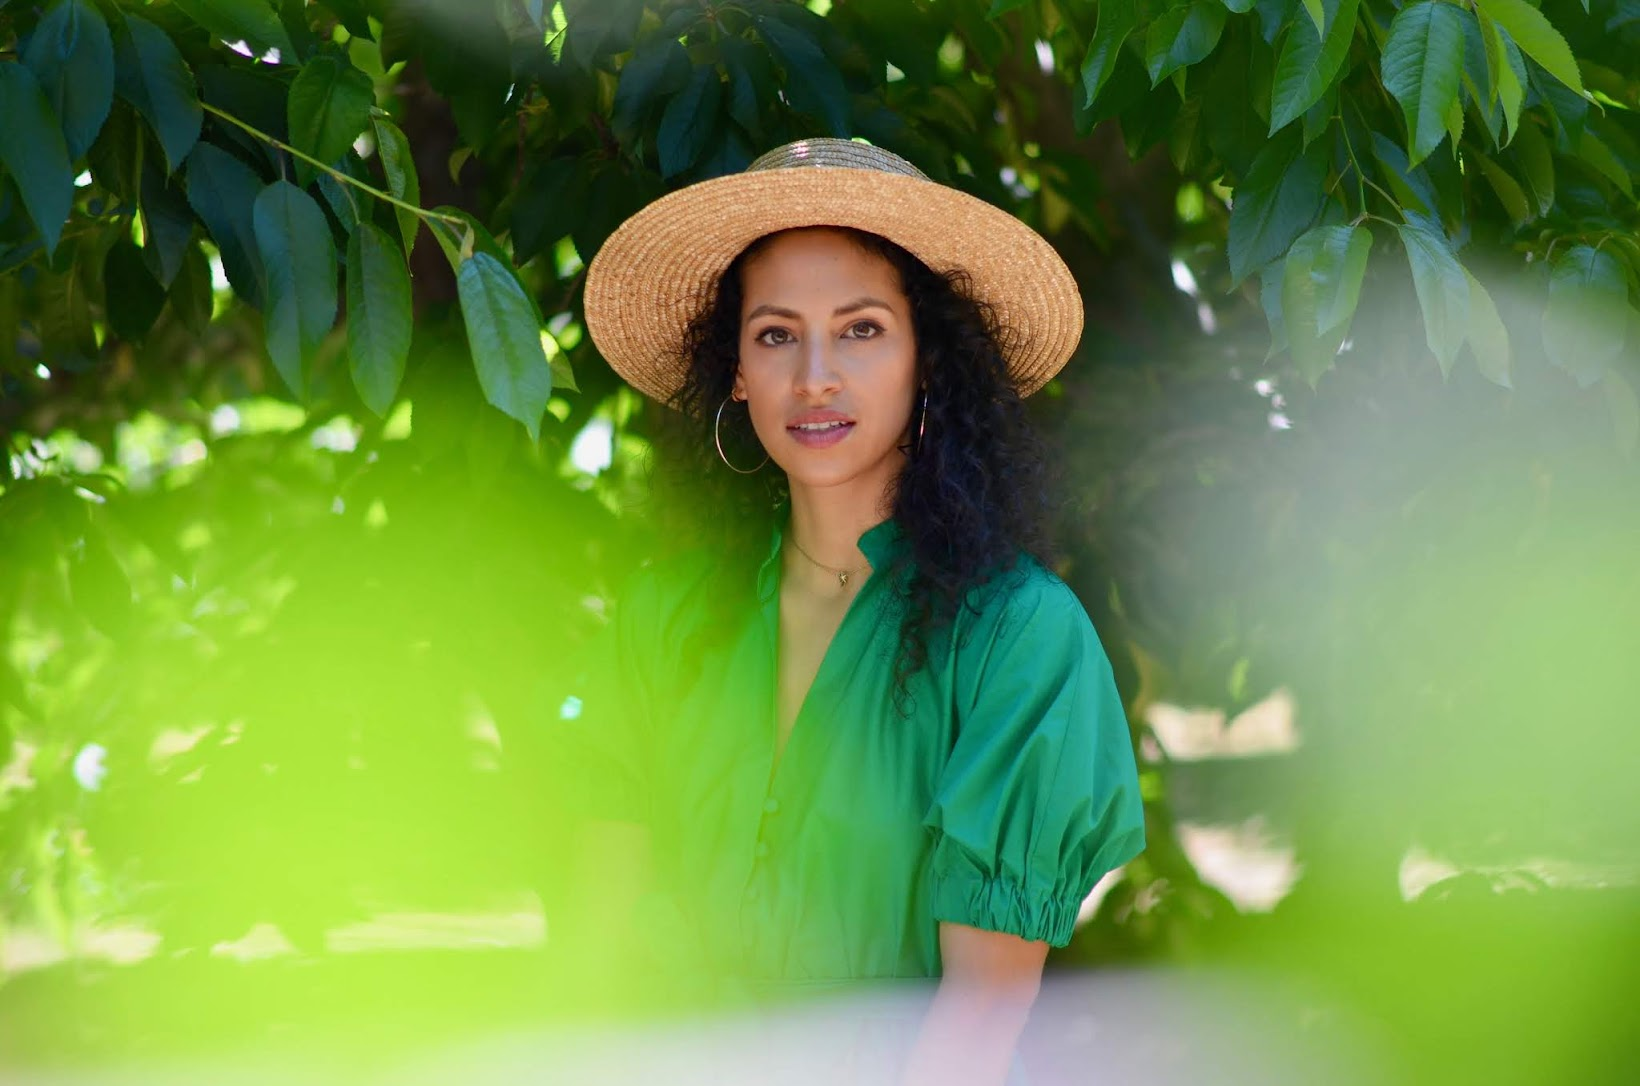 blueberry picking, Ott farms, Central valley agriculture, what to wear when fruit picking, green summer dress, straw fedora, zara